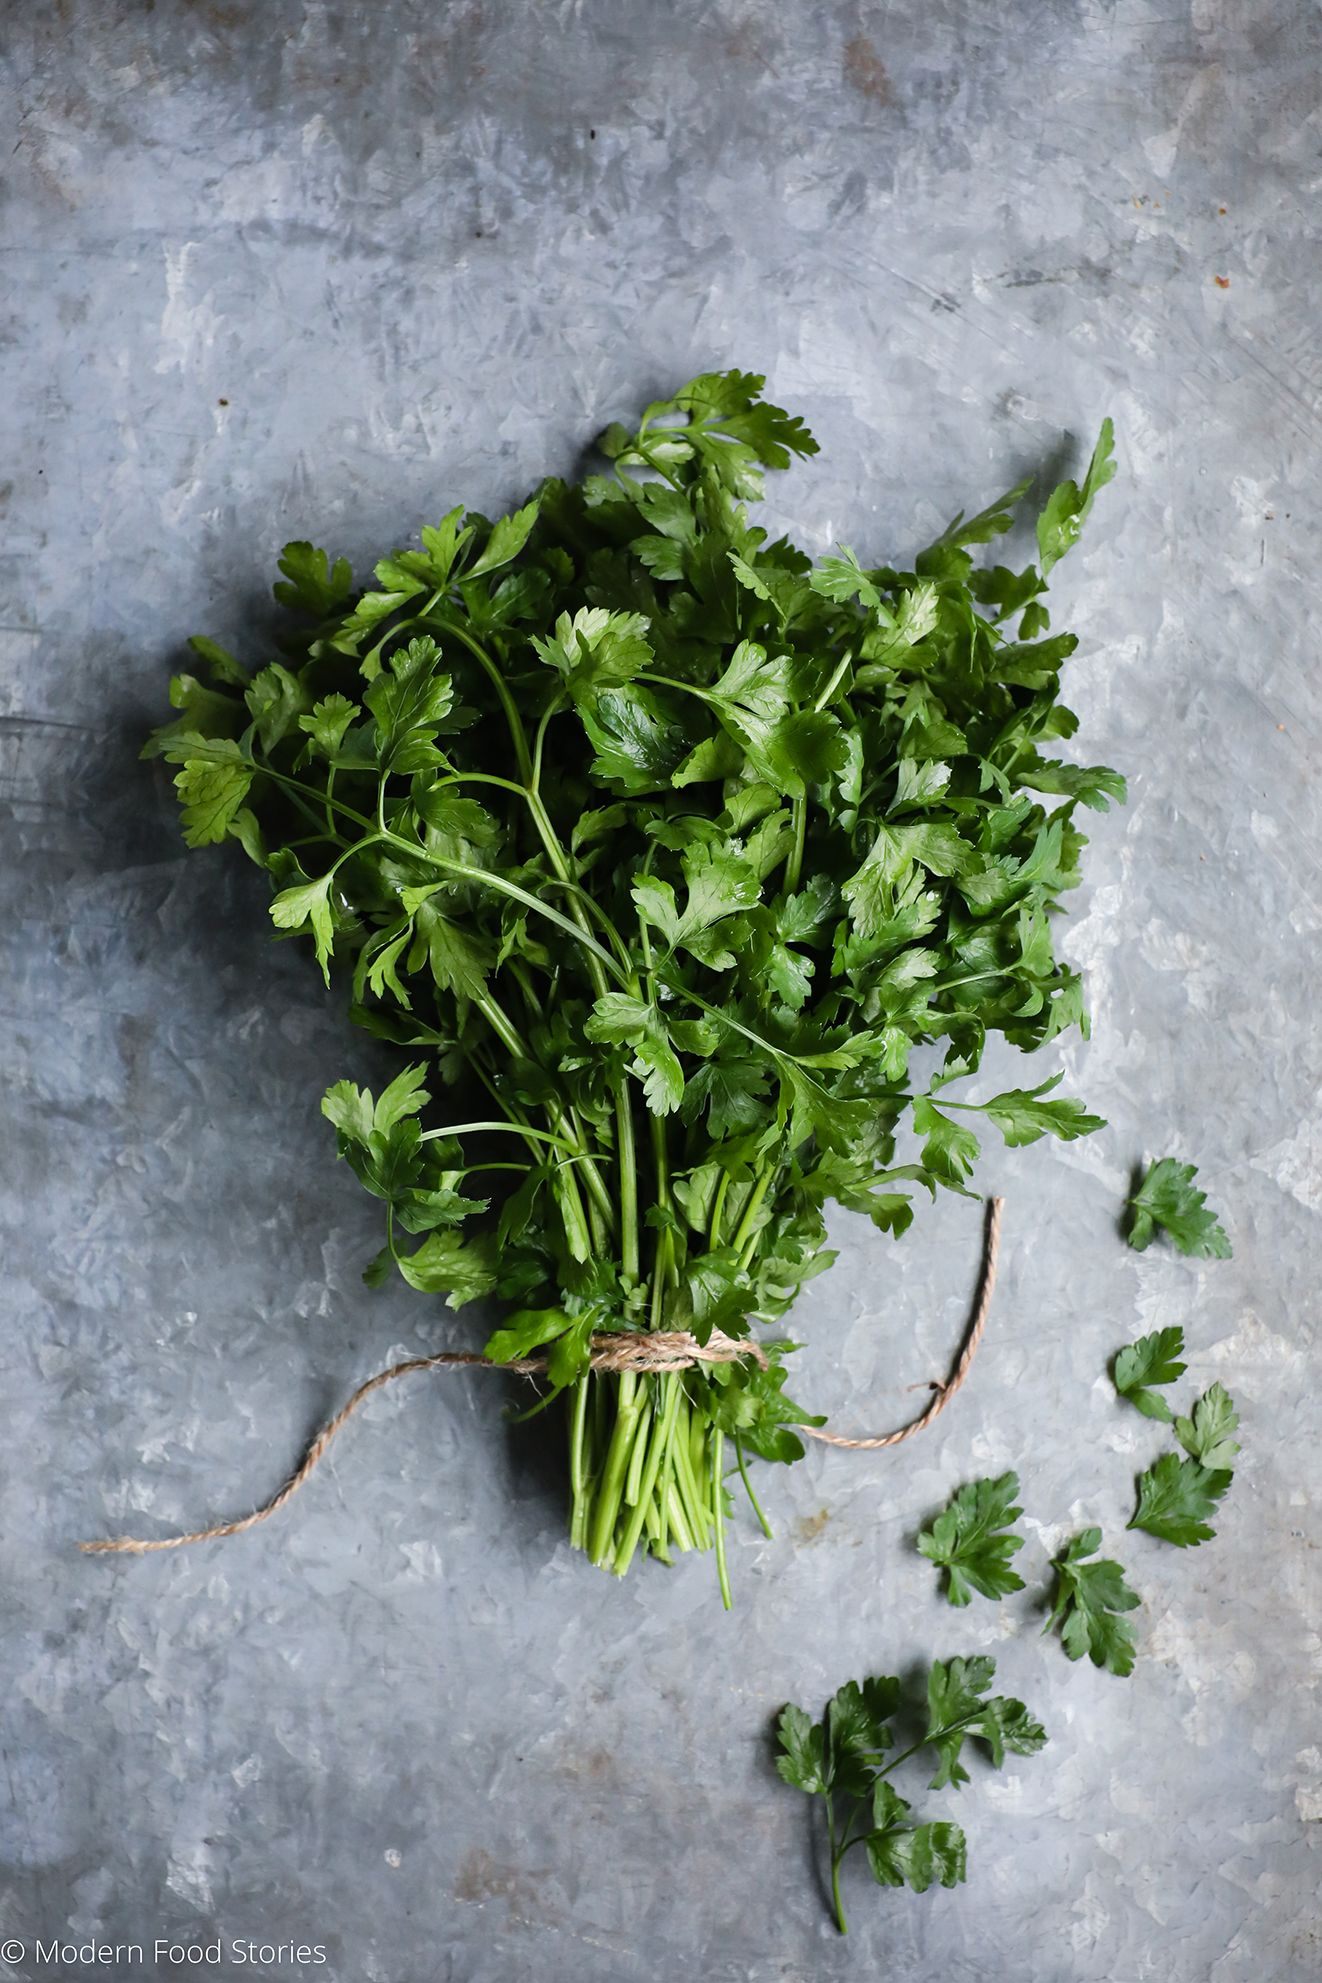 Pin by Betha Rush on Herbs in 2020 | Herbs, Parsley, Food